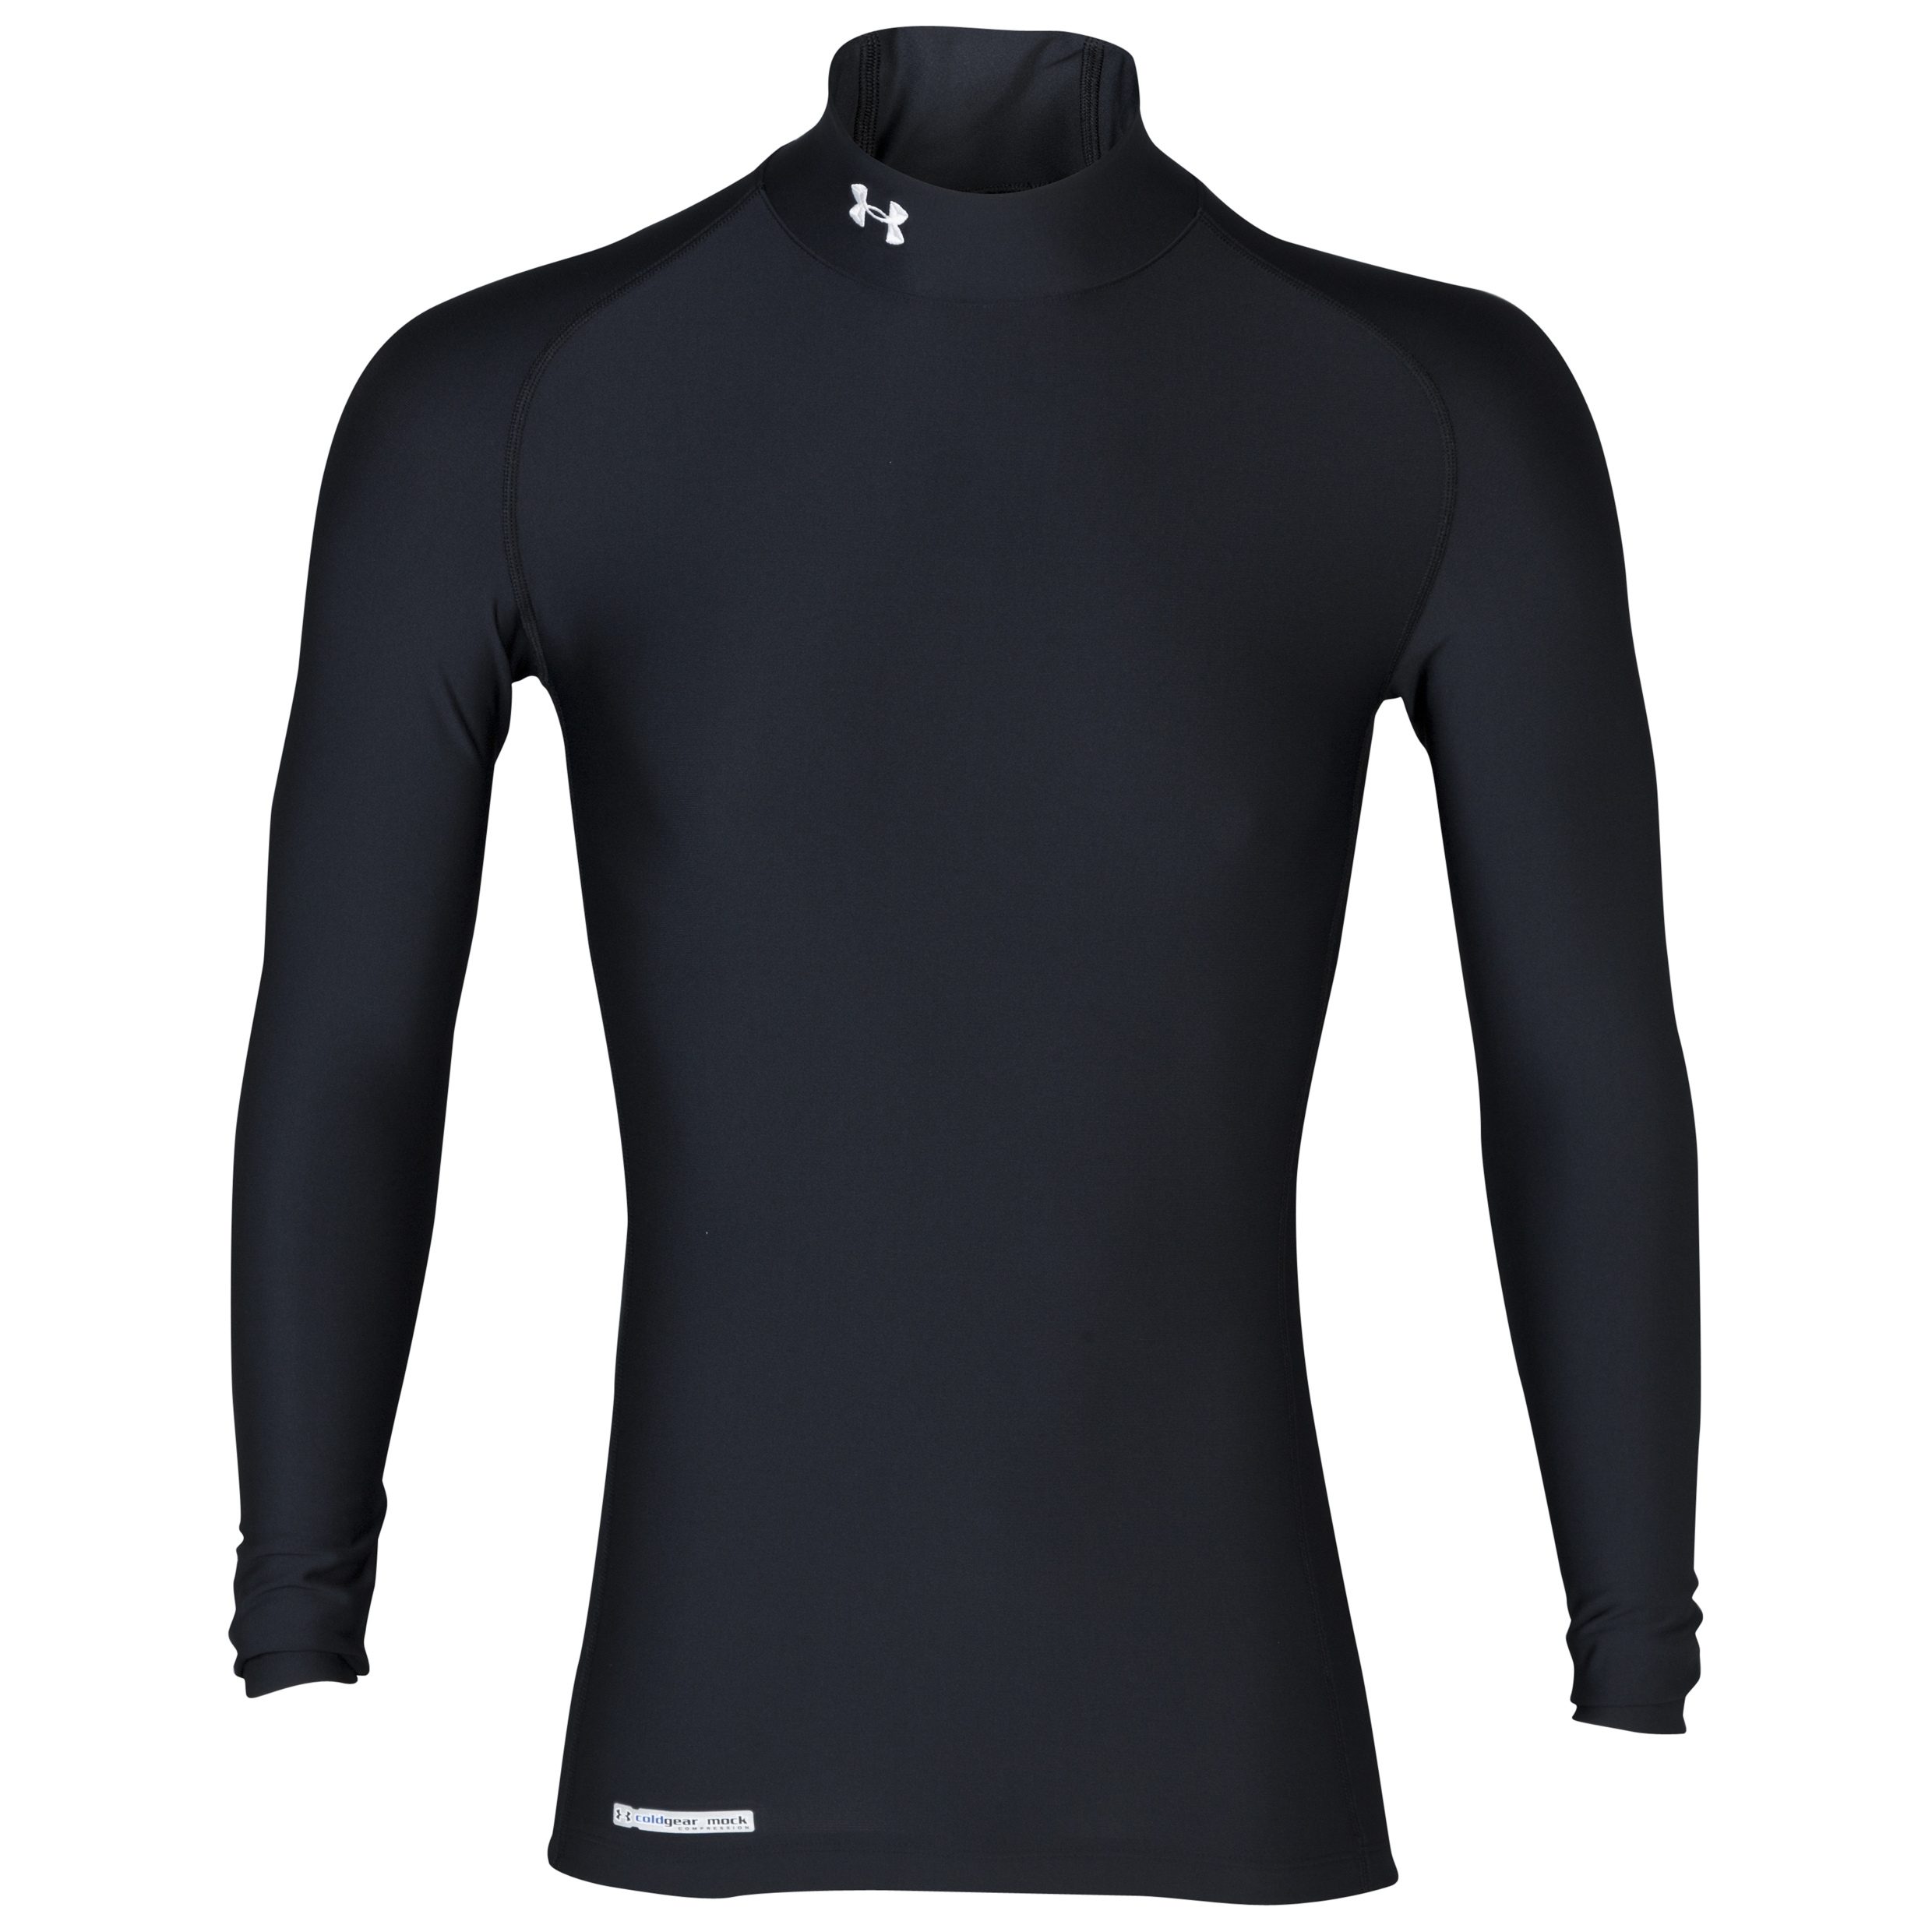 Under Armour Evo Coldgear mock Base Layer Top - Long Sleeve Black